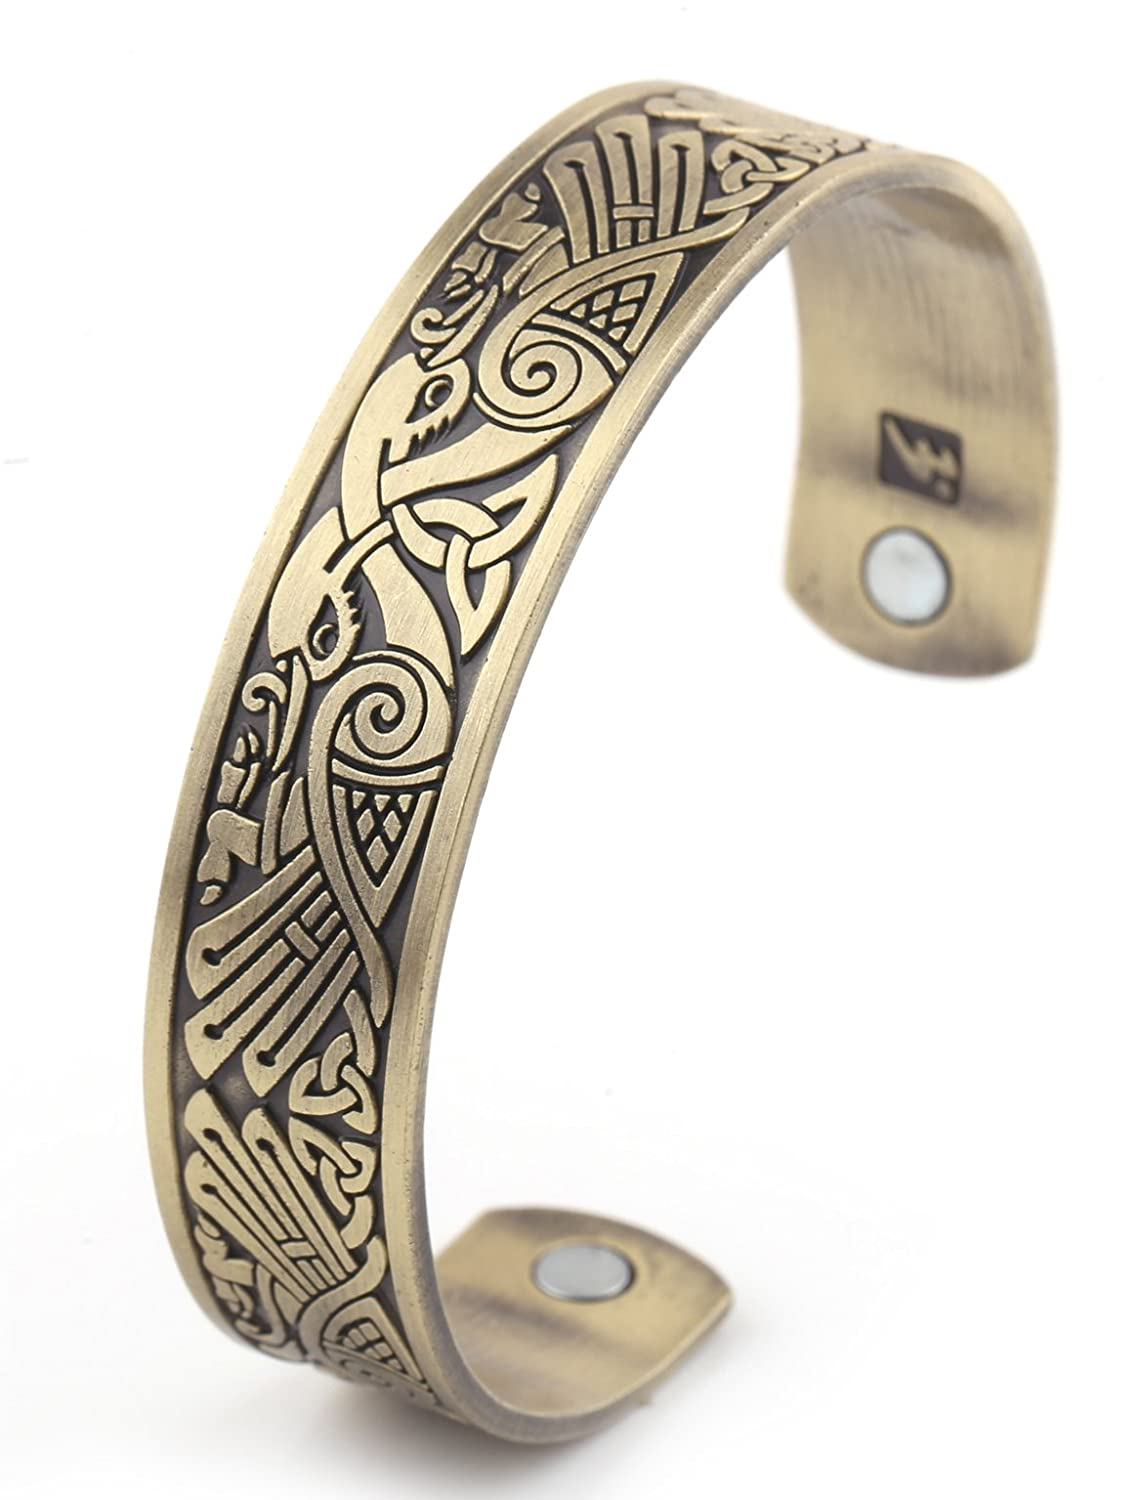 Health Care Magnetic Cuff Bracelet for Pain Relief, Therapy, Balance and Energy for Men and Women YI WU KE JI YW-B109591